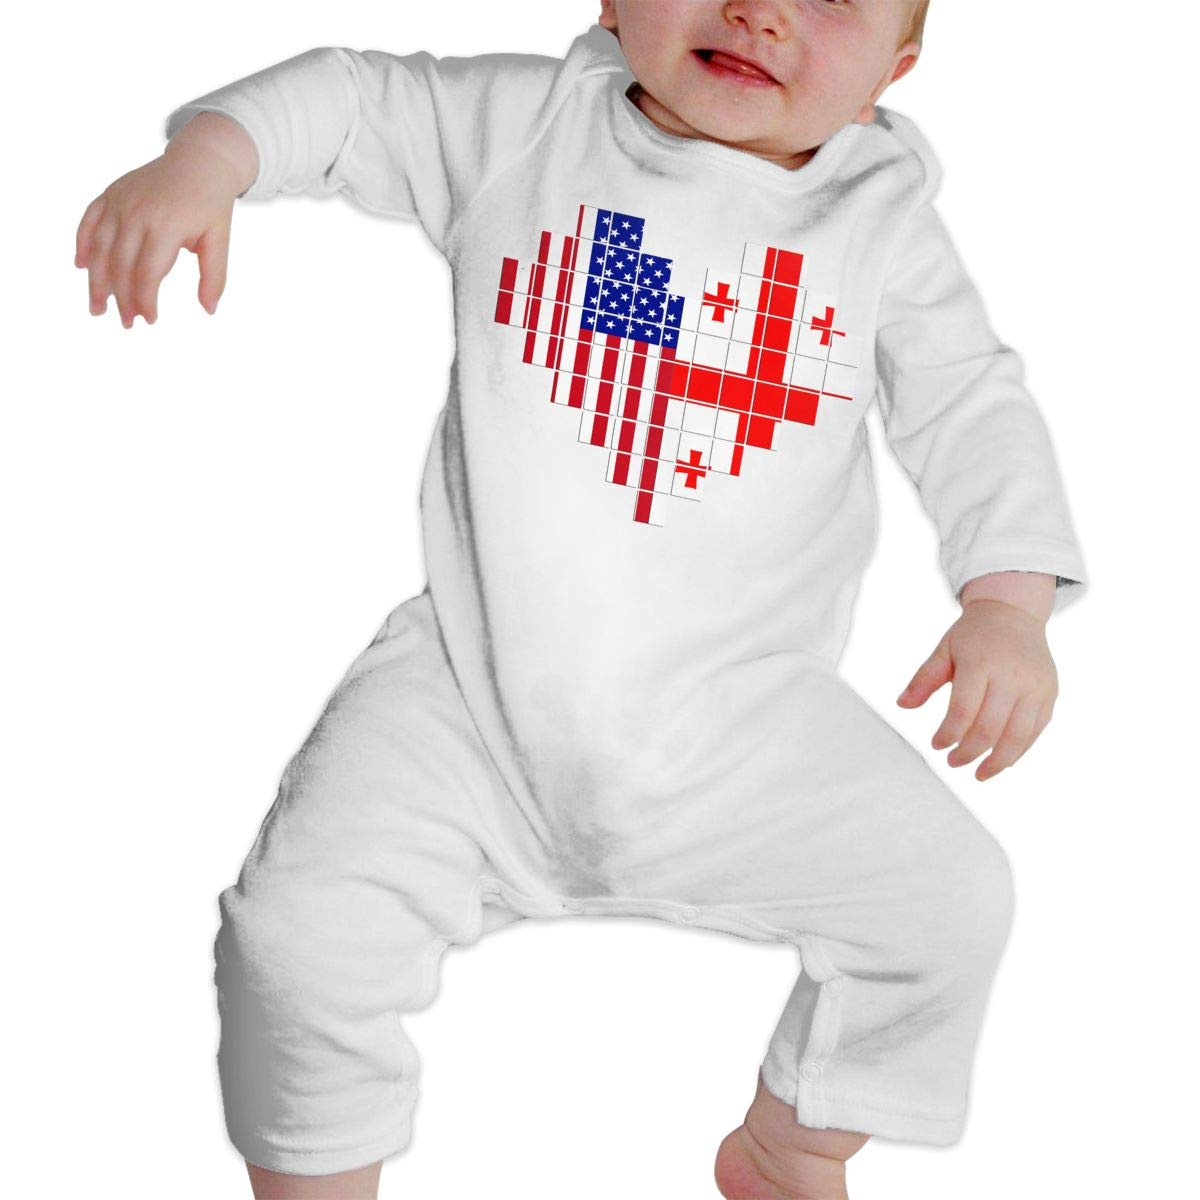 Cotton Long Sleeve Baby Clothes Newborn Infant Baby Girls Boys Bodysuits American Flag Georgia Flag Puzzle Heart 2